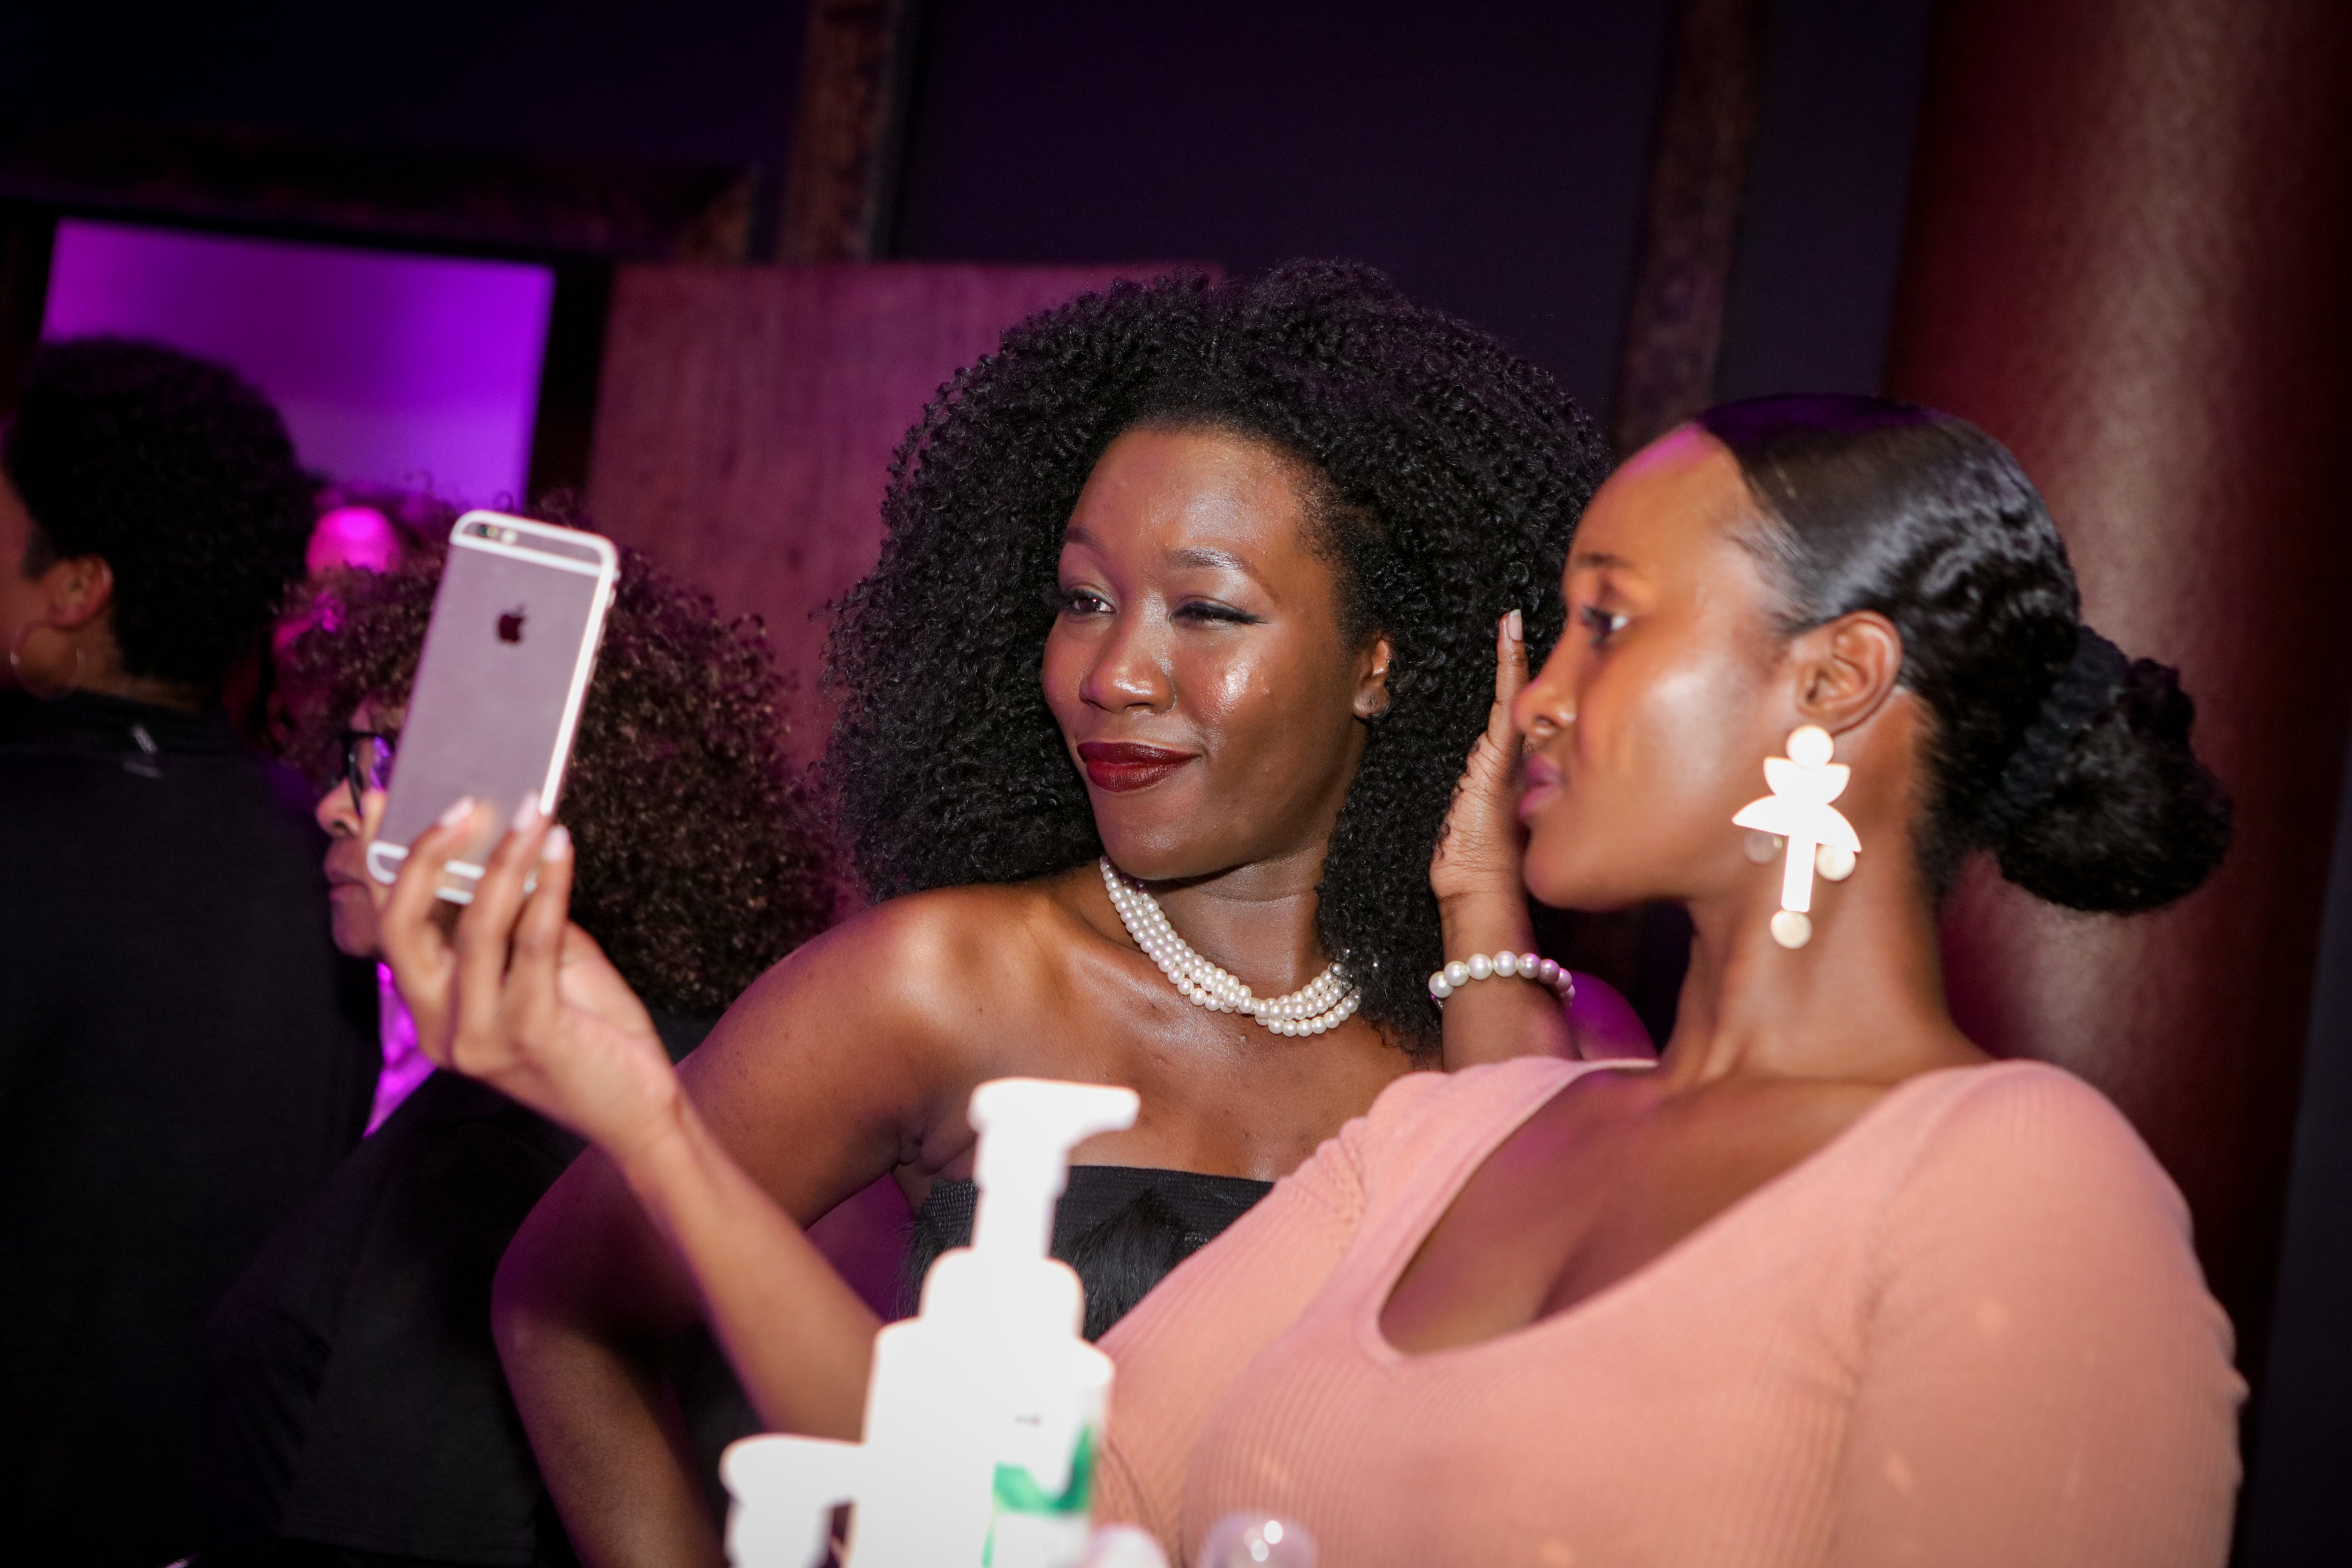 Get Paid to Post: The Future for Influencers is Led by a Black Woman